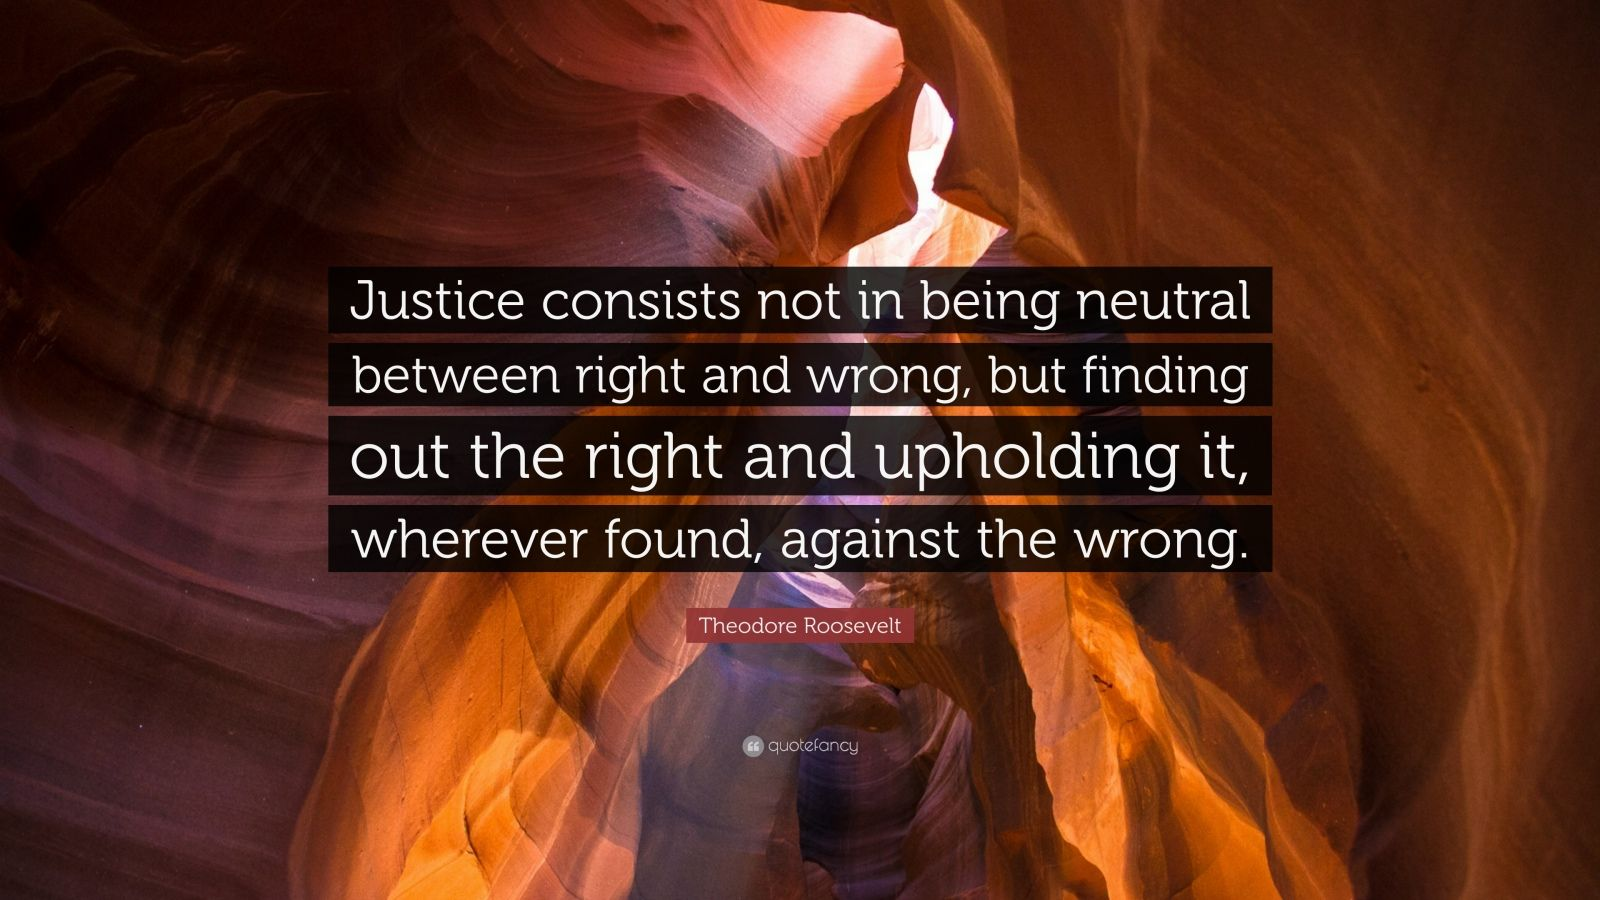 """Theodore Roosevelt Quote: """"Justice consists not in being neutral between right and wrong, but finding out the right and upholding it, wherever found, against the wrong."""""""